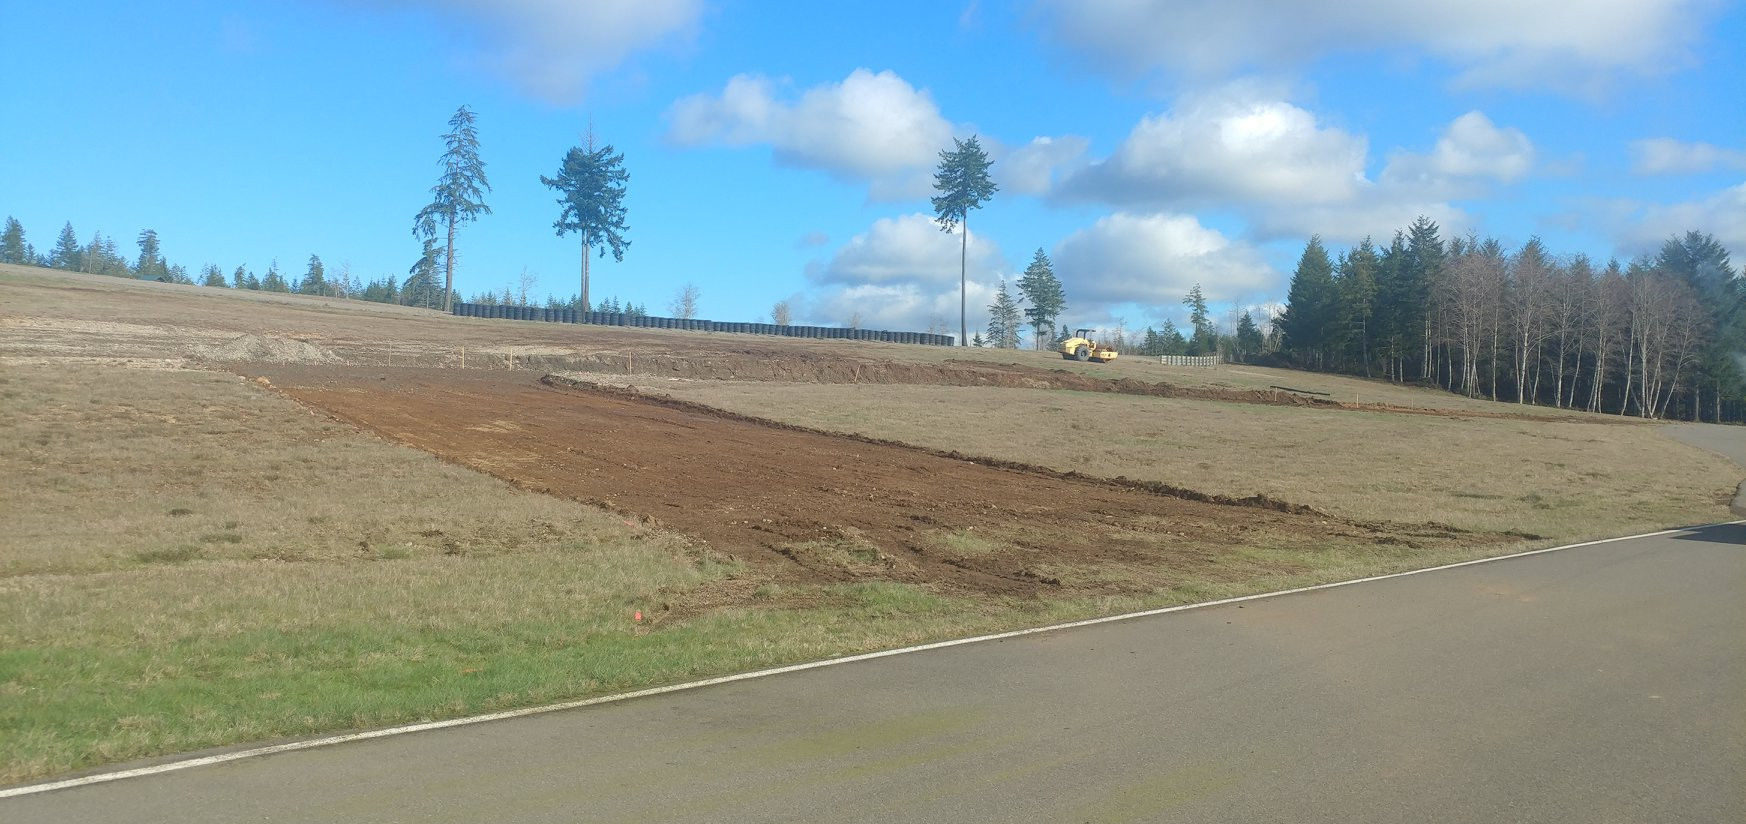 Ridge Motorsports Park has started work on a new chicane on its 2,850-foot front straightaway for MotoAmerica to use during its event June 26-28, 2020. Photo courtesy of Ridge Motorsports Park.